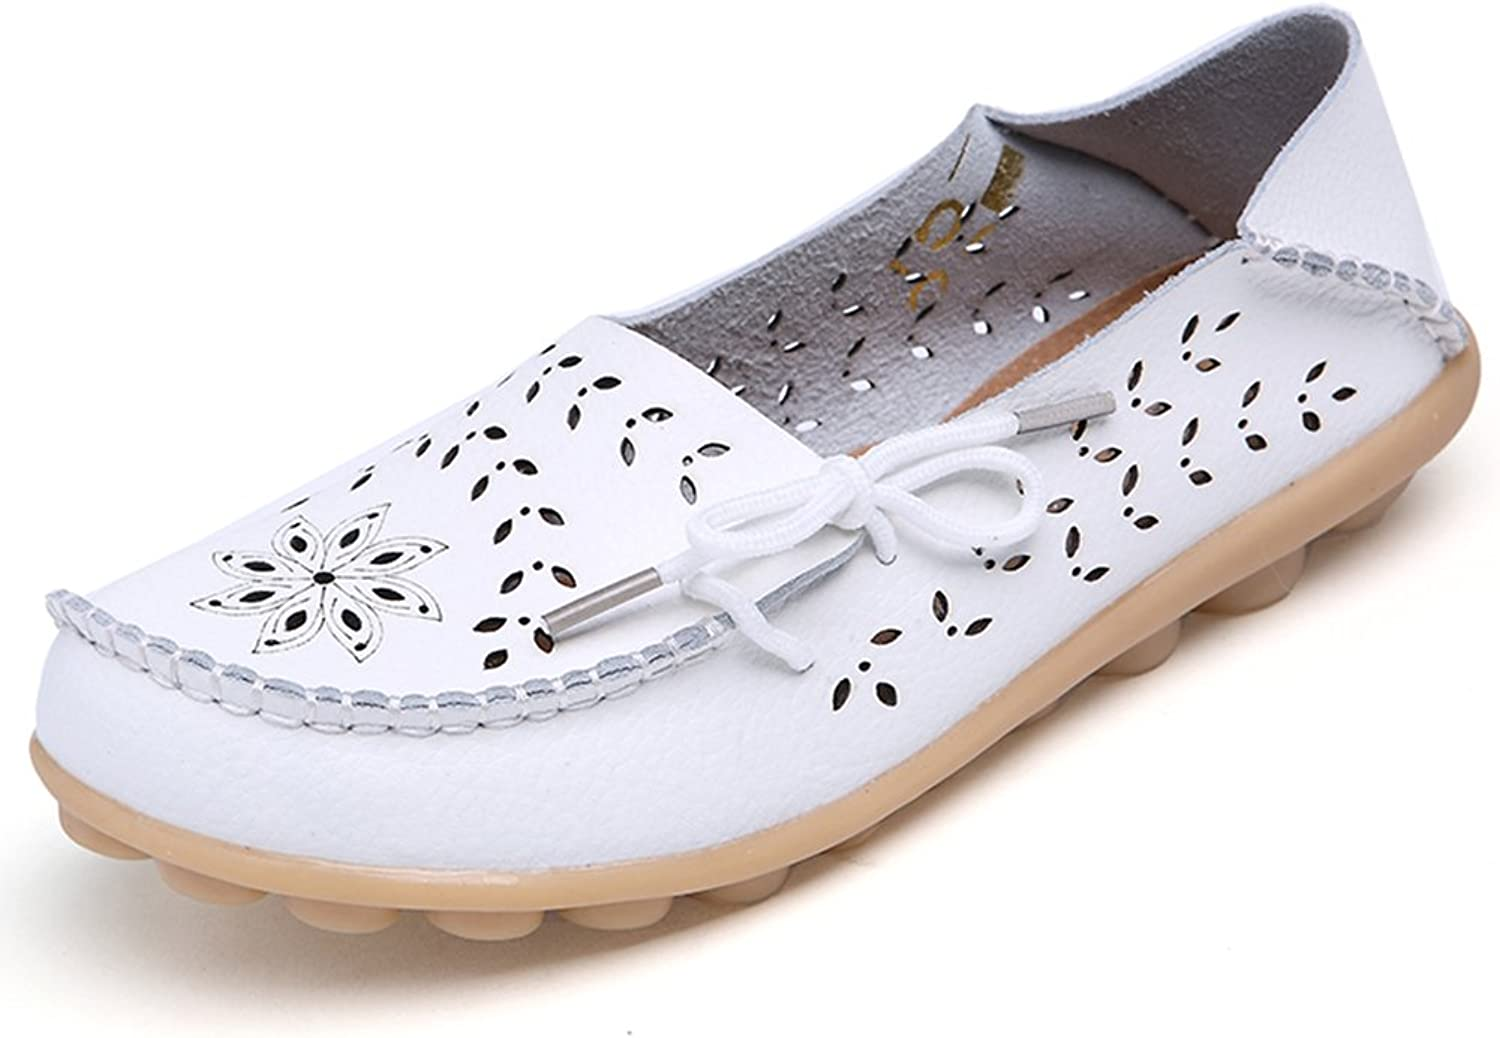 DUOYANGJIASHA Fashion Brand Best Show Women's Leather Loafers Flats Casual Round Toe Moccasins Wild Breathable Driving shoes White